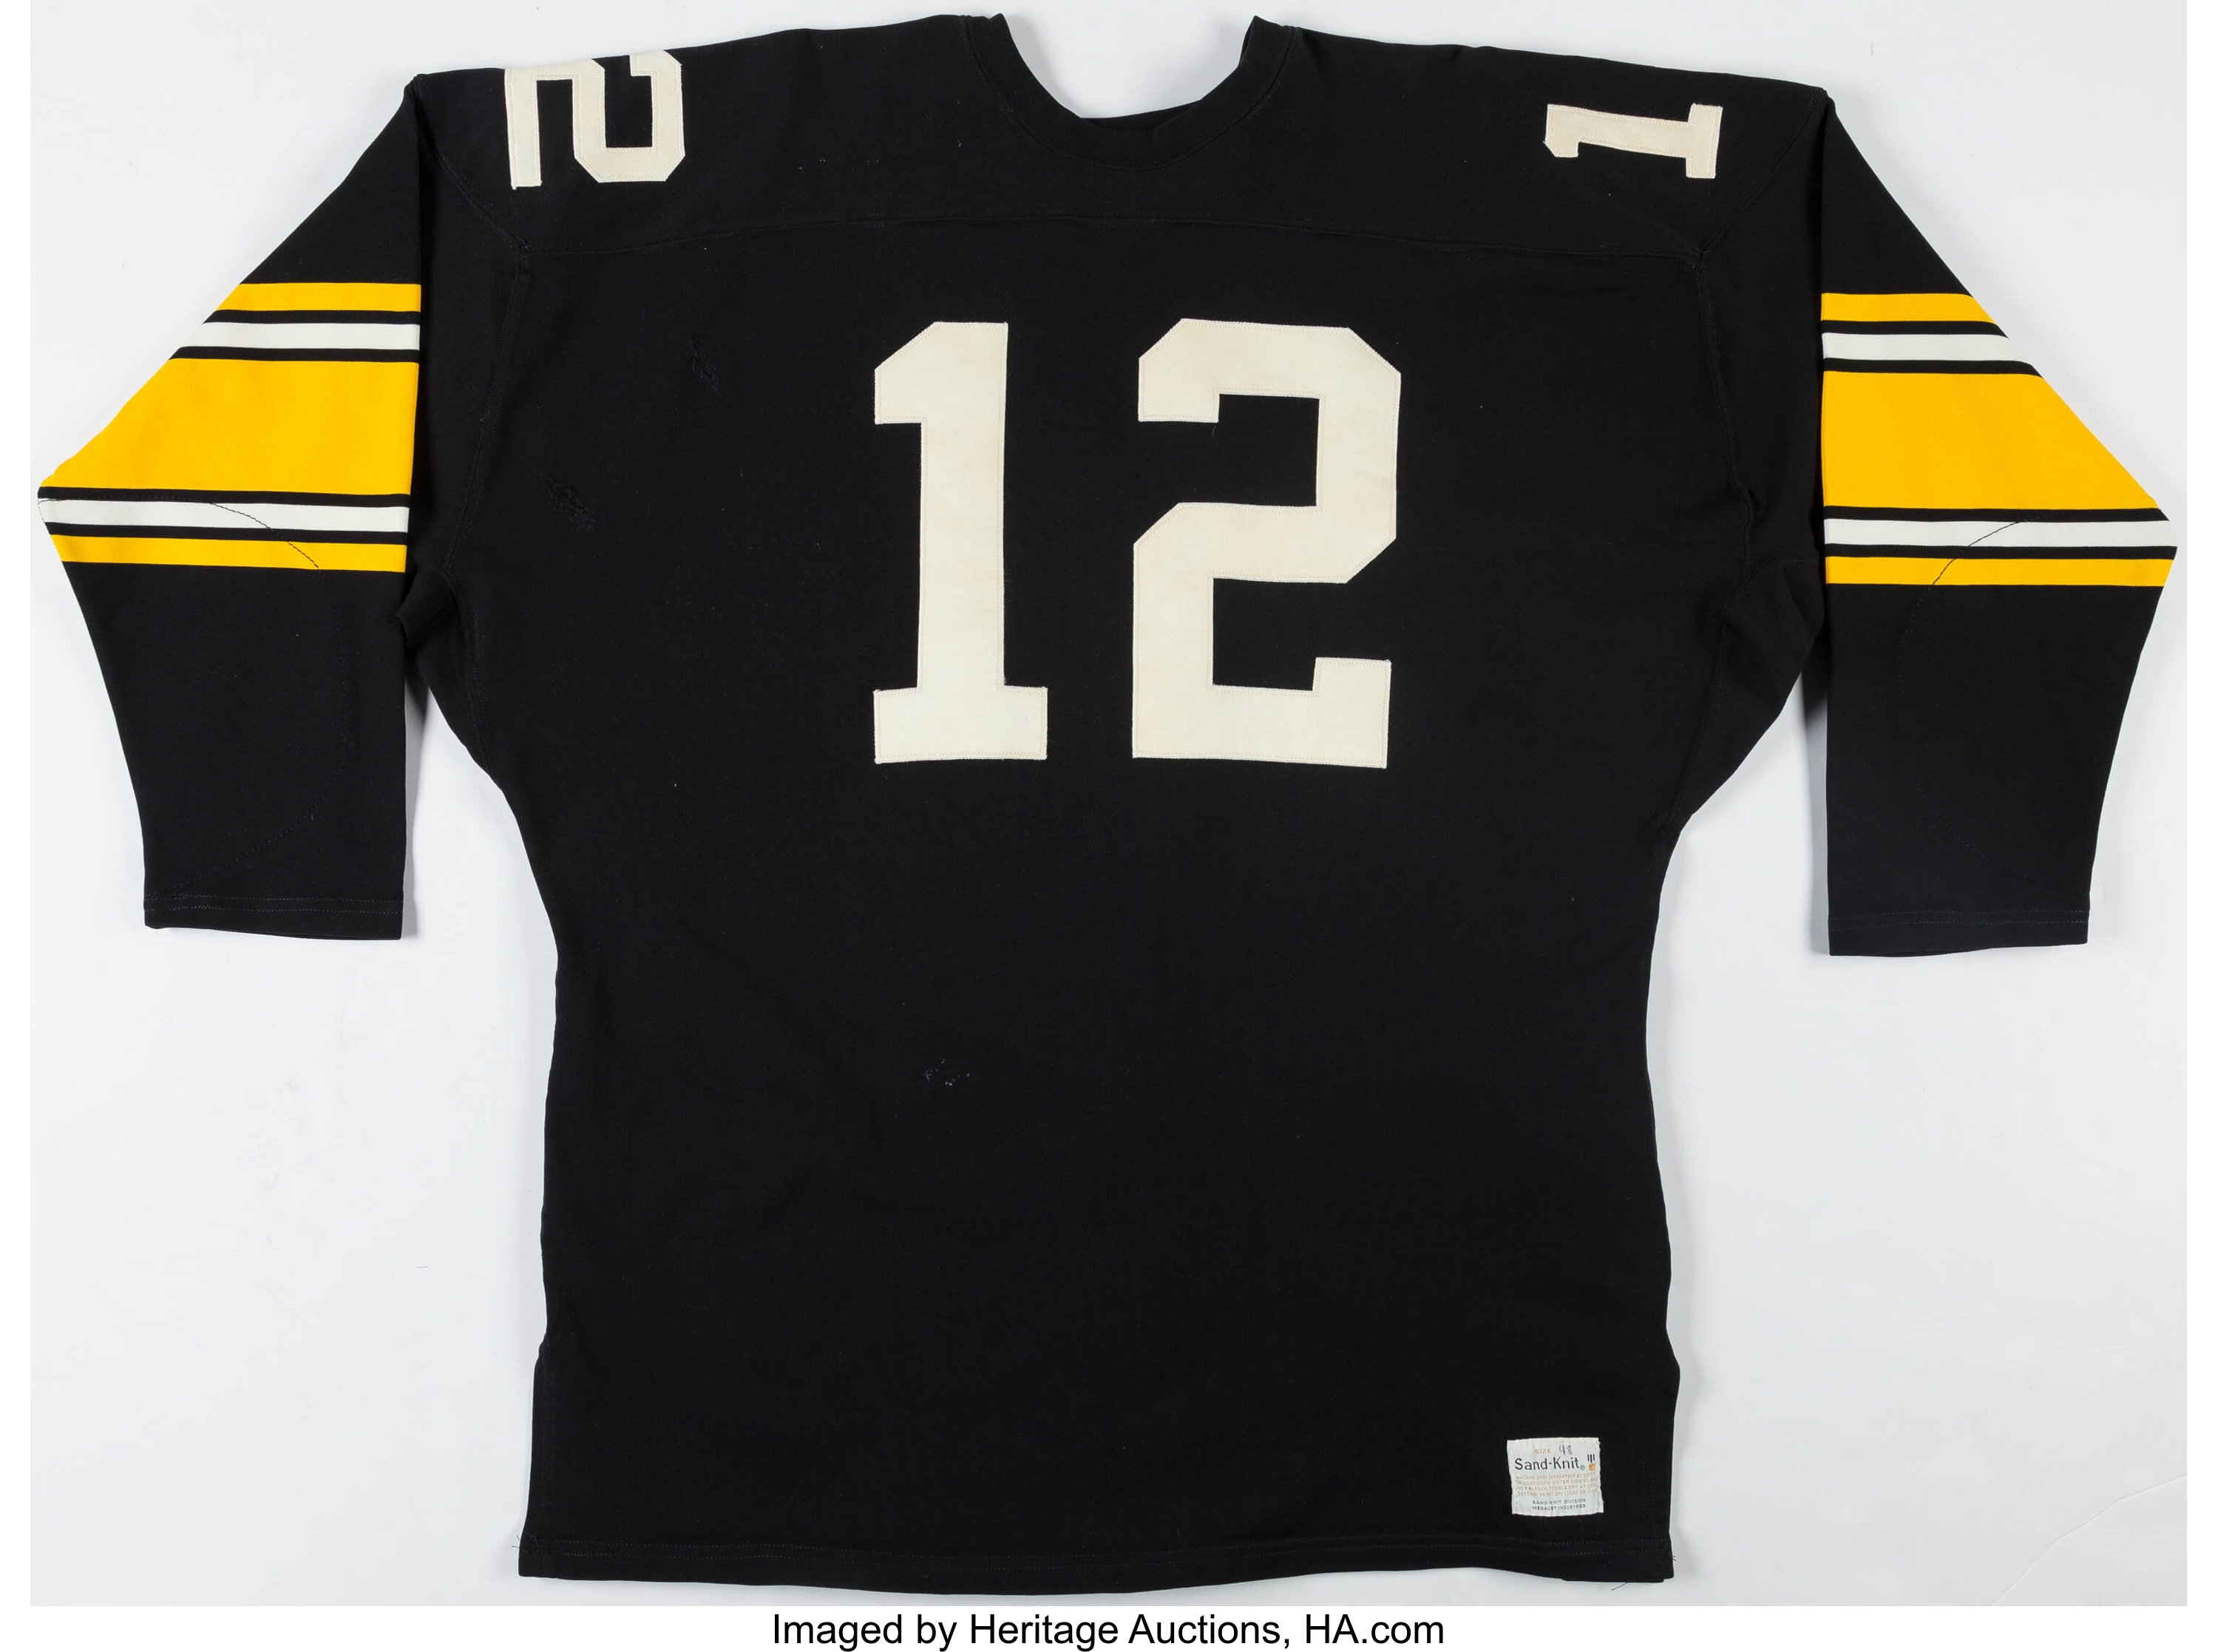 dea4c67417d 1970's Terry Bradshaw Vintage Pittsburgh Steelers Jersey. ...   Lot #44157    Heritage Auctions